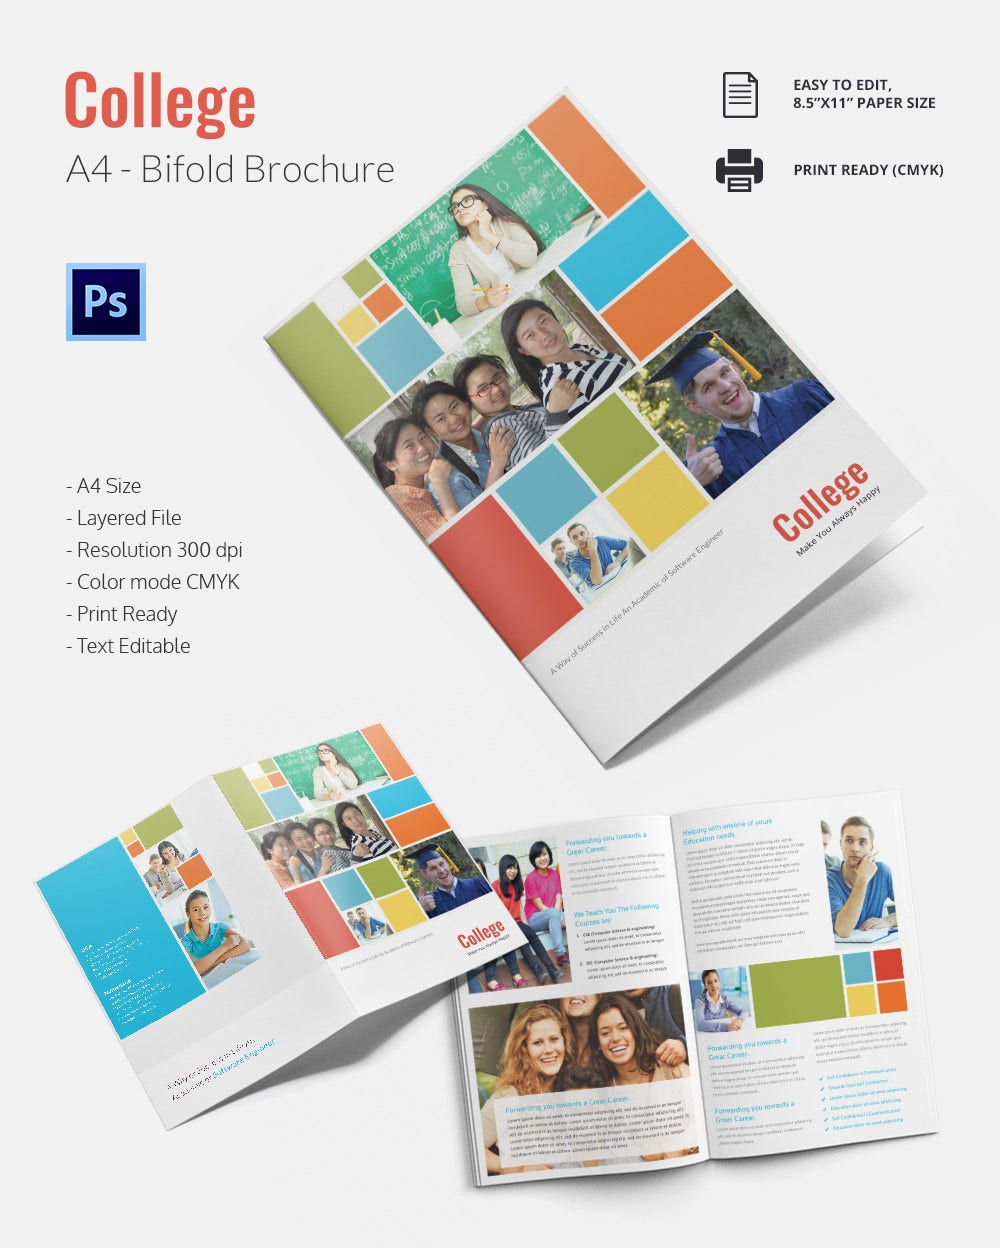 college brochure template 34 jpg psd indesign format editable a4 college brochure template